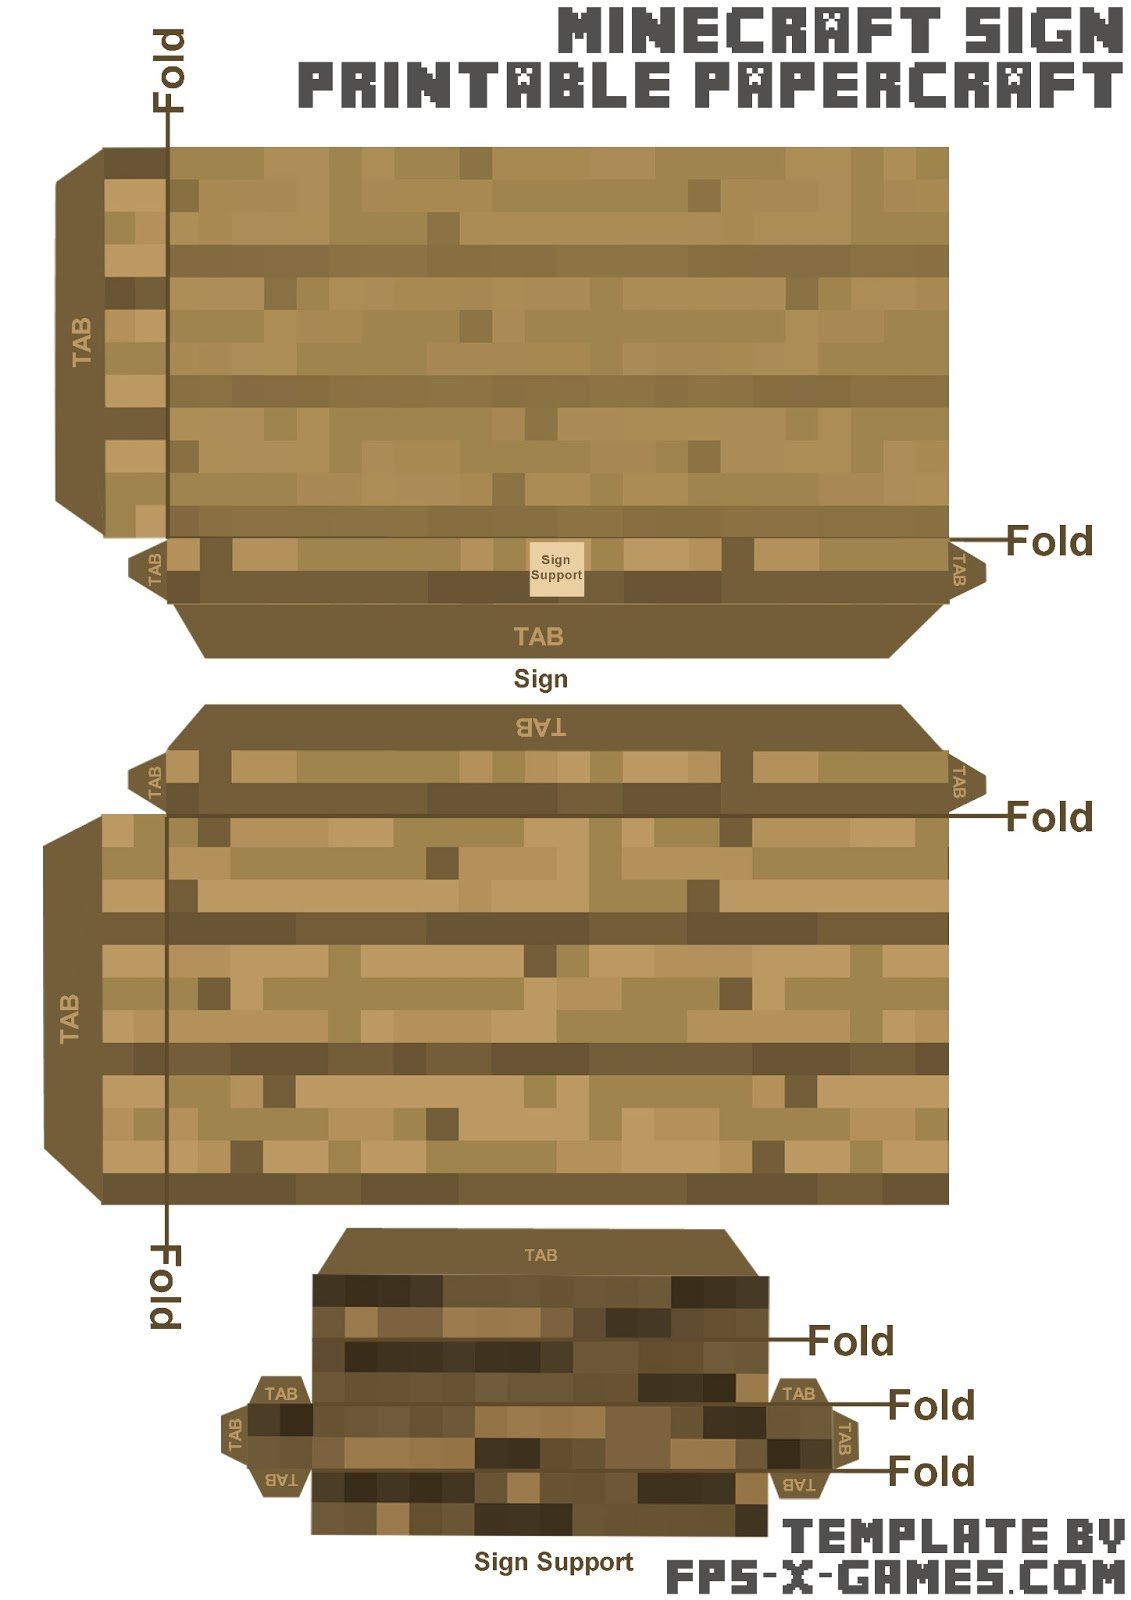 Free minecraft papercraft blank sign template cut out for Minecraft cut out templates